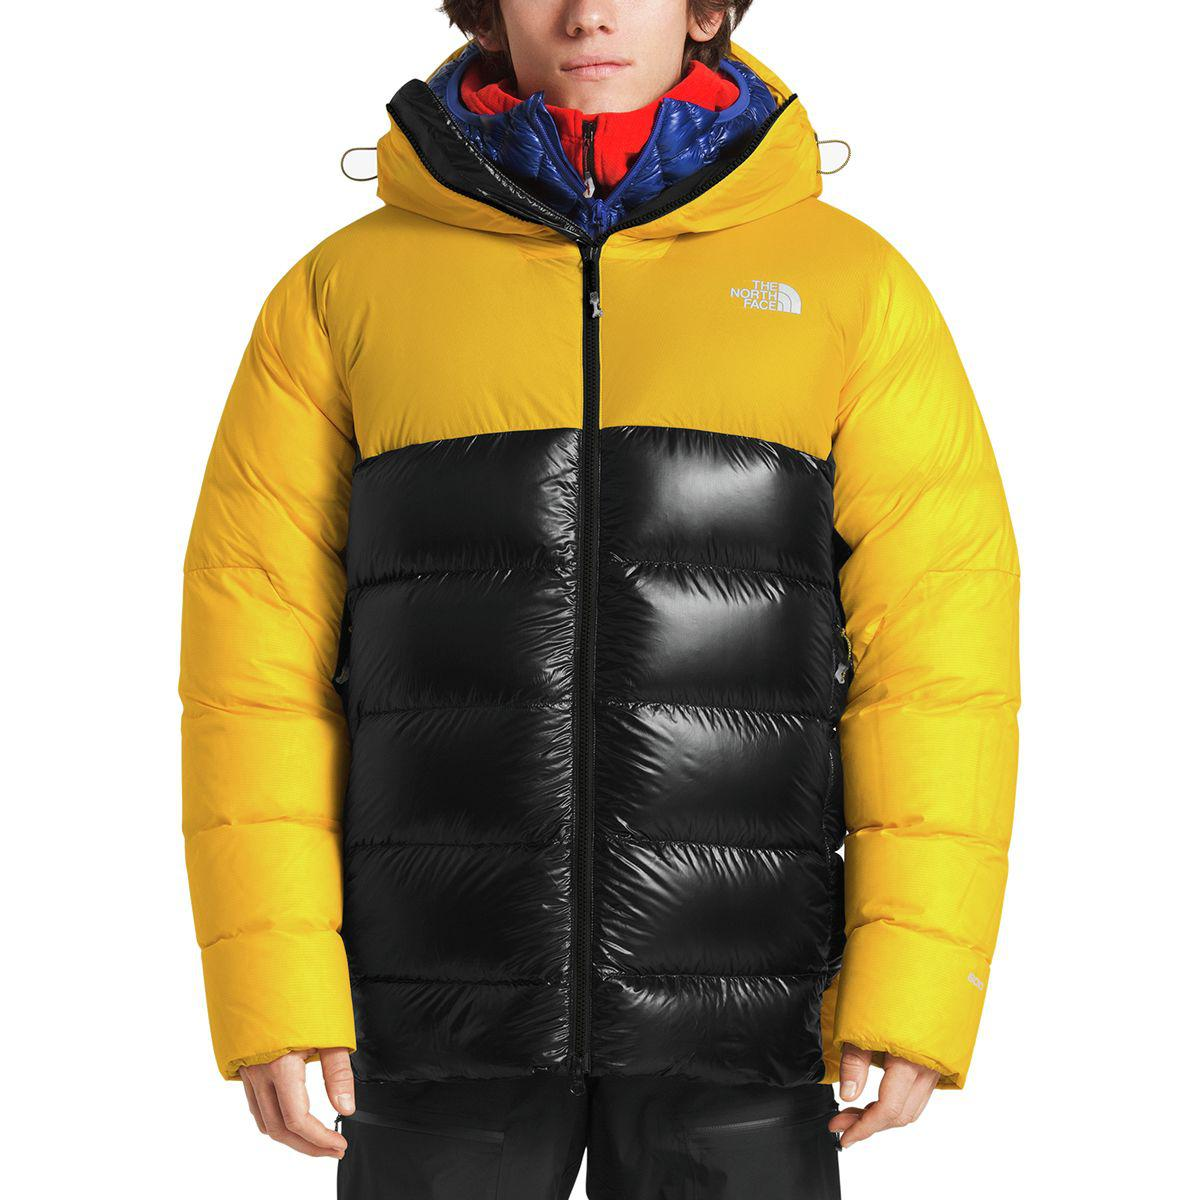 0ebd5f6e6f3d ... best price the north face yellow summit l6 aw down belay parka for men  lyst 79026 australia womens summit l6 down belay parka past season thumb .  ...